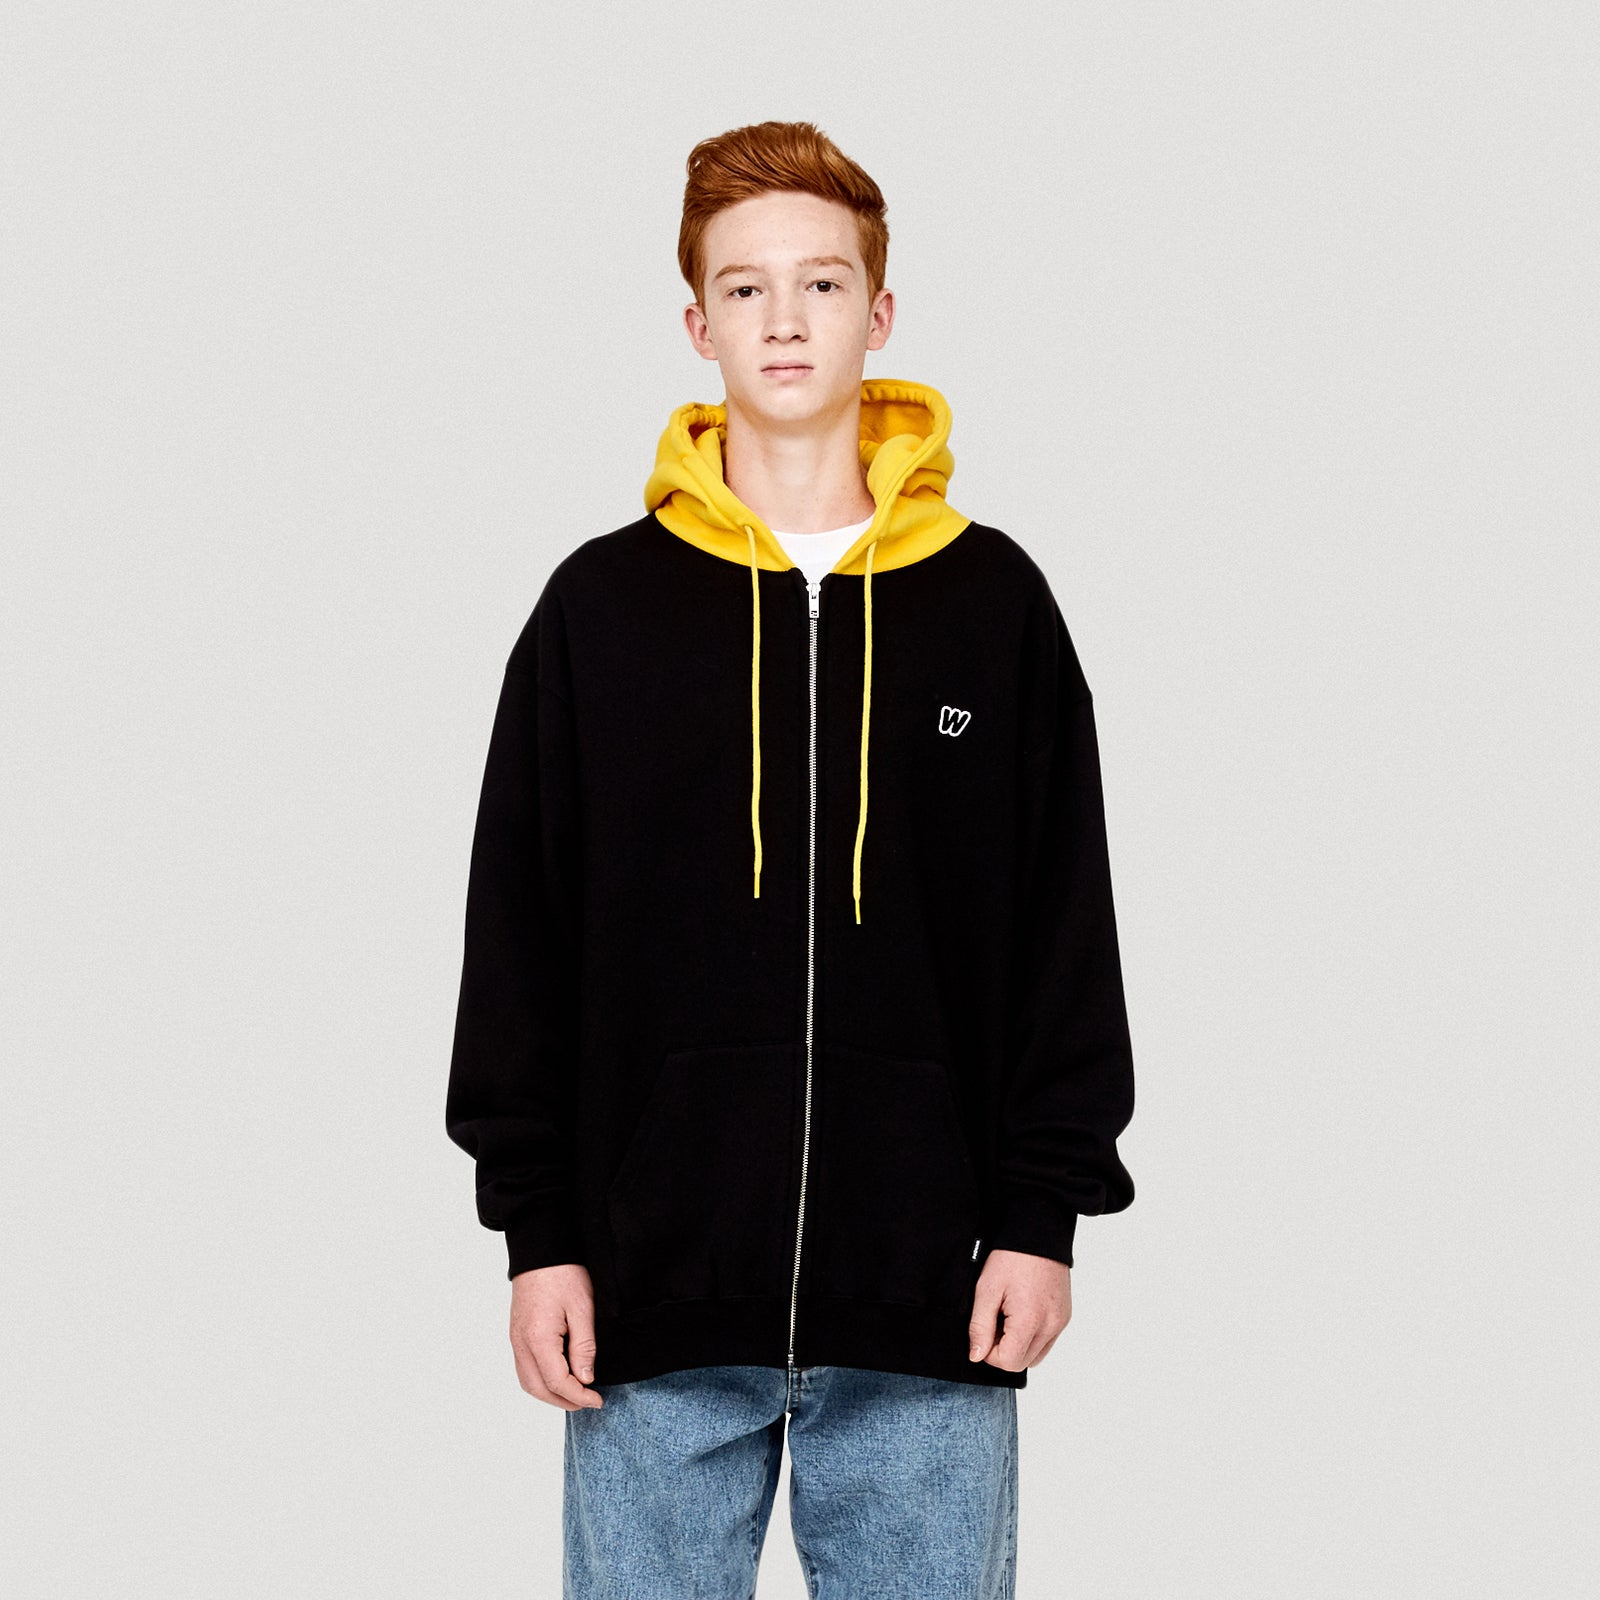 W LOGO HOODED ZIP JK (BLACK)